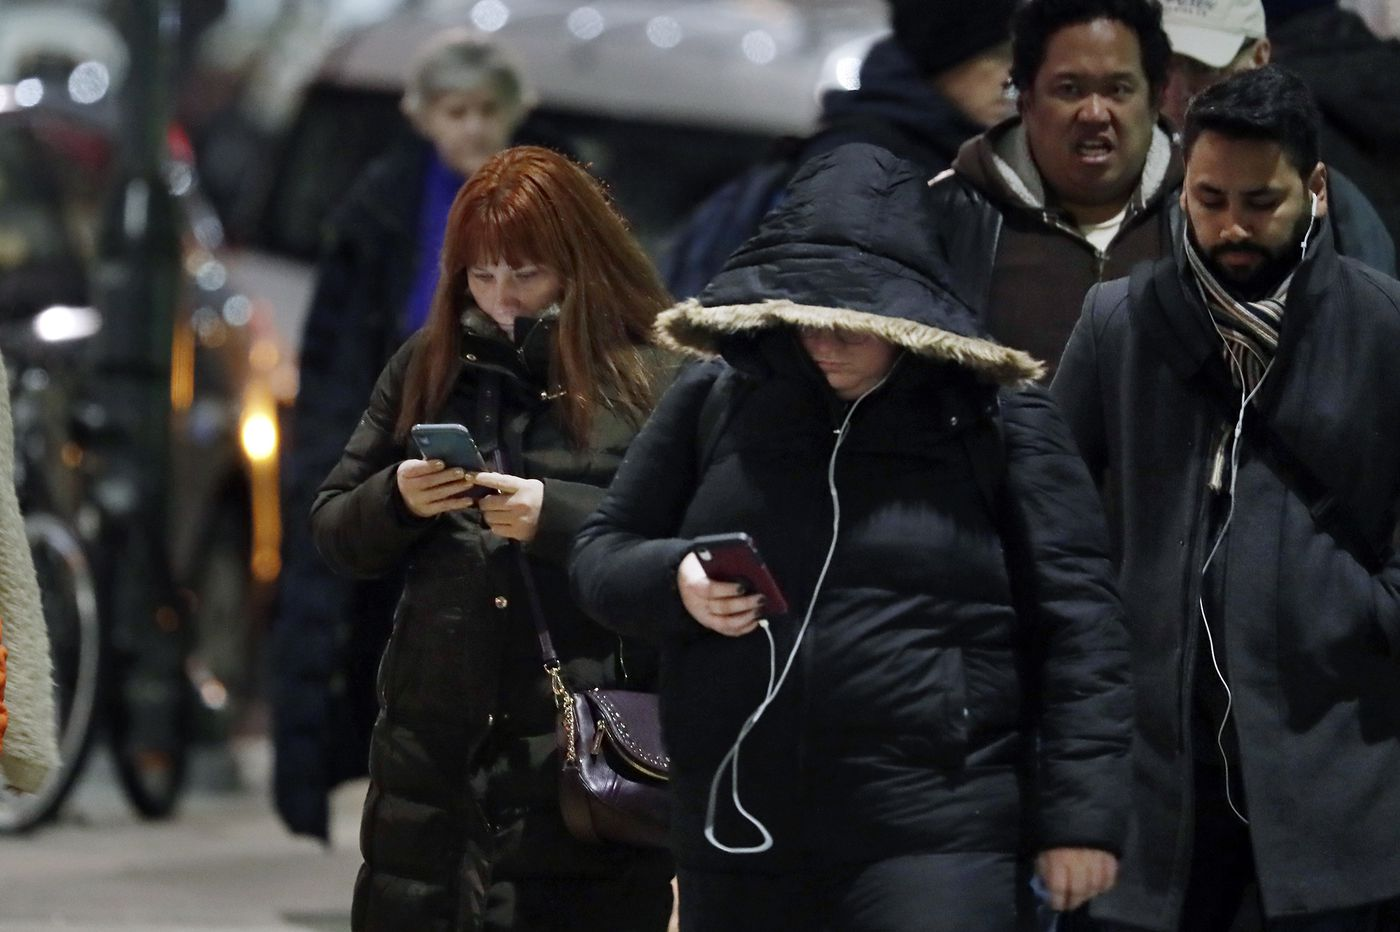 Cell phones lead to thousands of head and neck injuries each year, Rutgers study finds